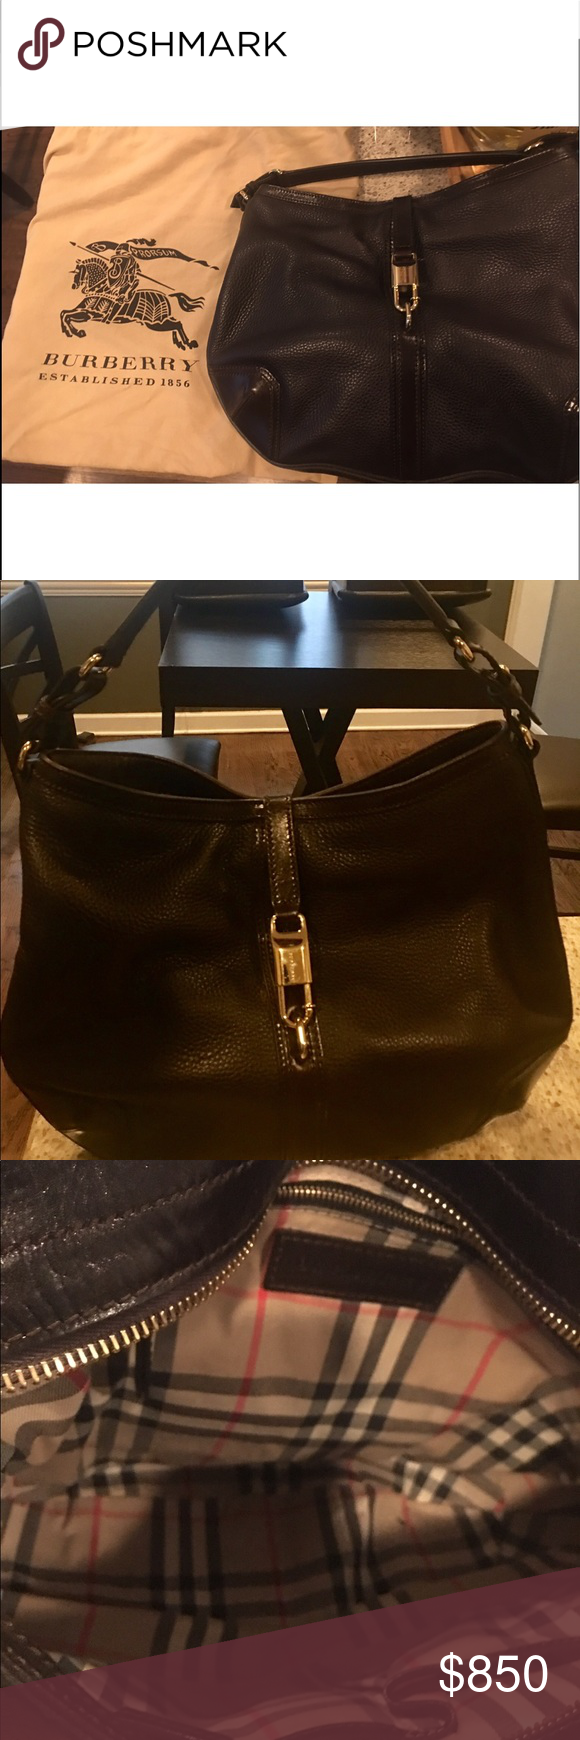 40a4dba45ec Authentic Burberry handbag Like new authentic Burberry handbag  1200 purse  only carried it once or twice, Beautiful brown leather outside, inside  Burberry ...